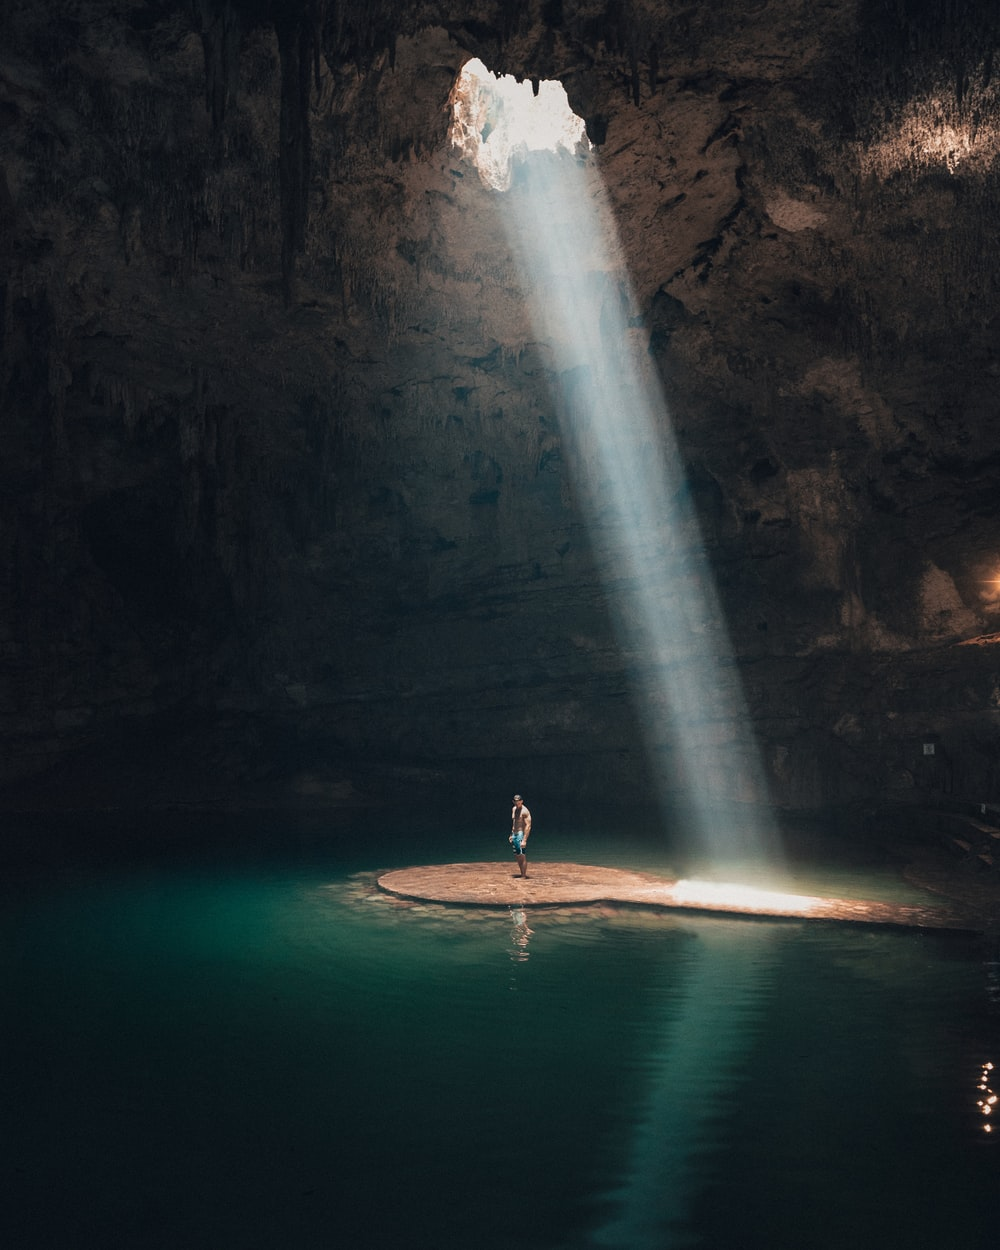 photo of man standing in cave surrounded by water